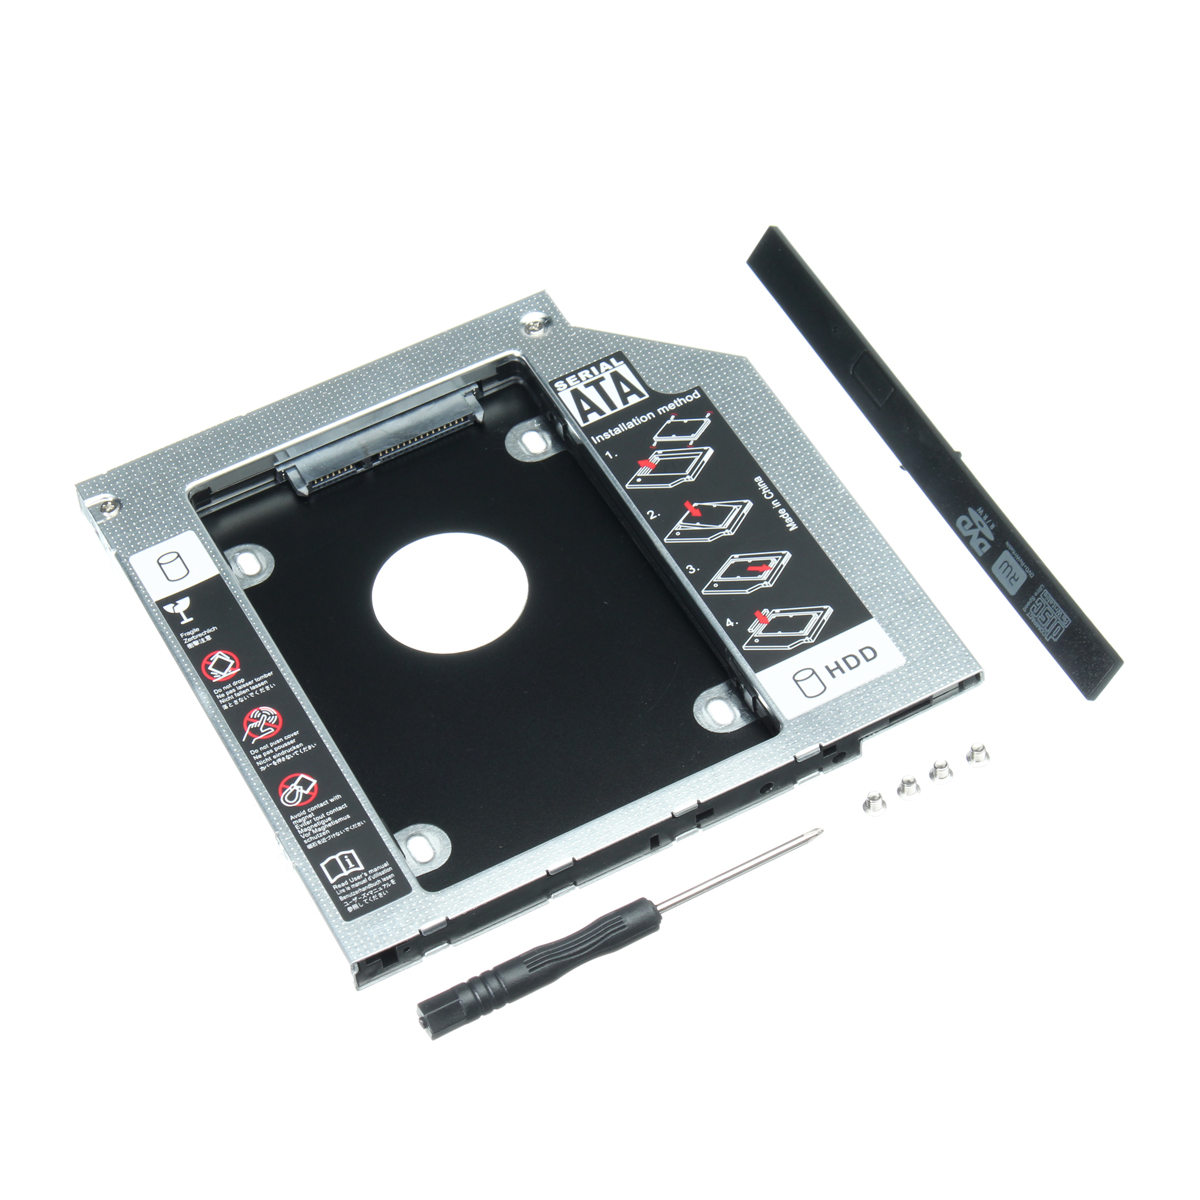 9.5mm Universal SATA 2nd HDD SSD Hard Drive Caddy for CD/DVD-ROM Optical Bay